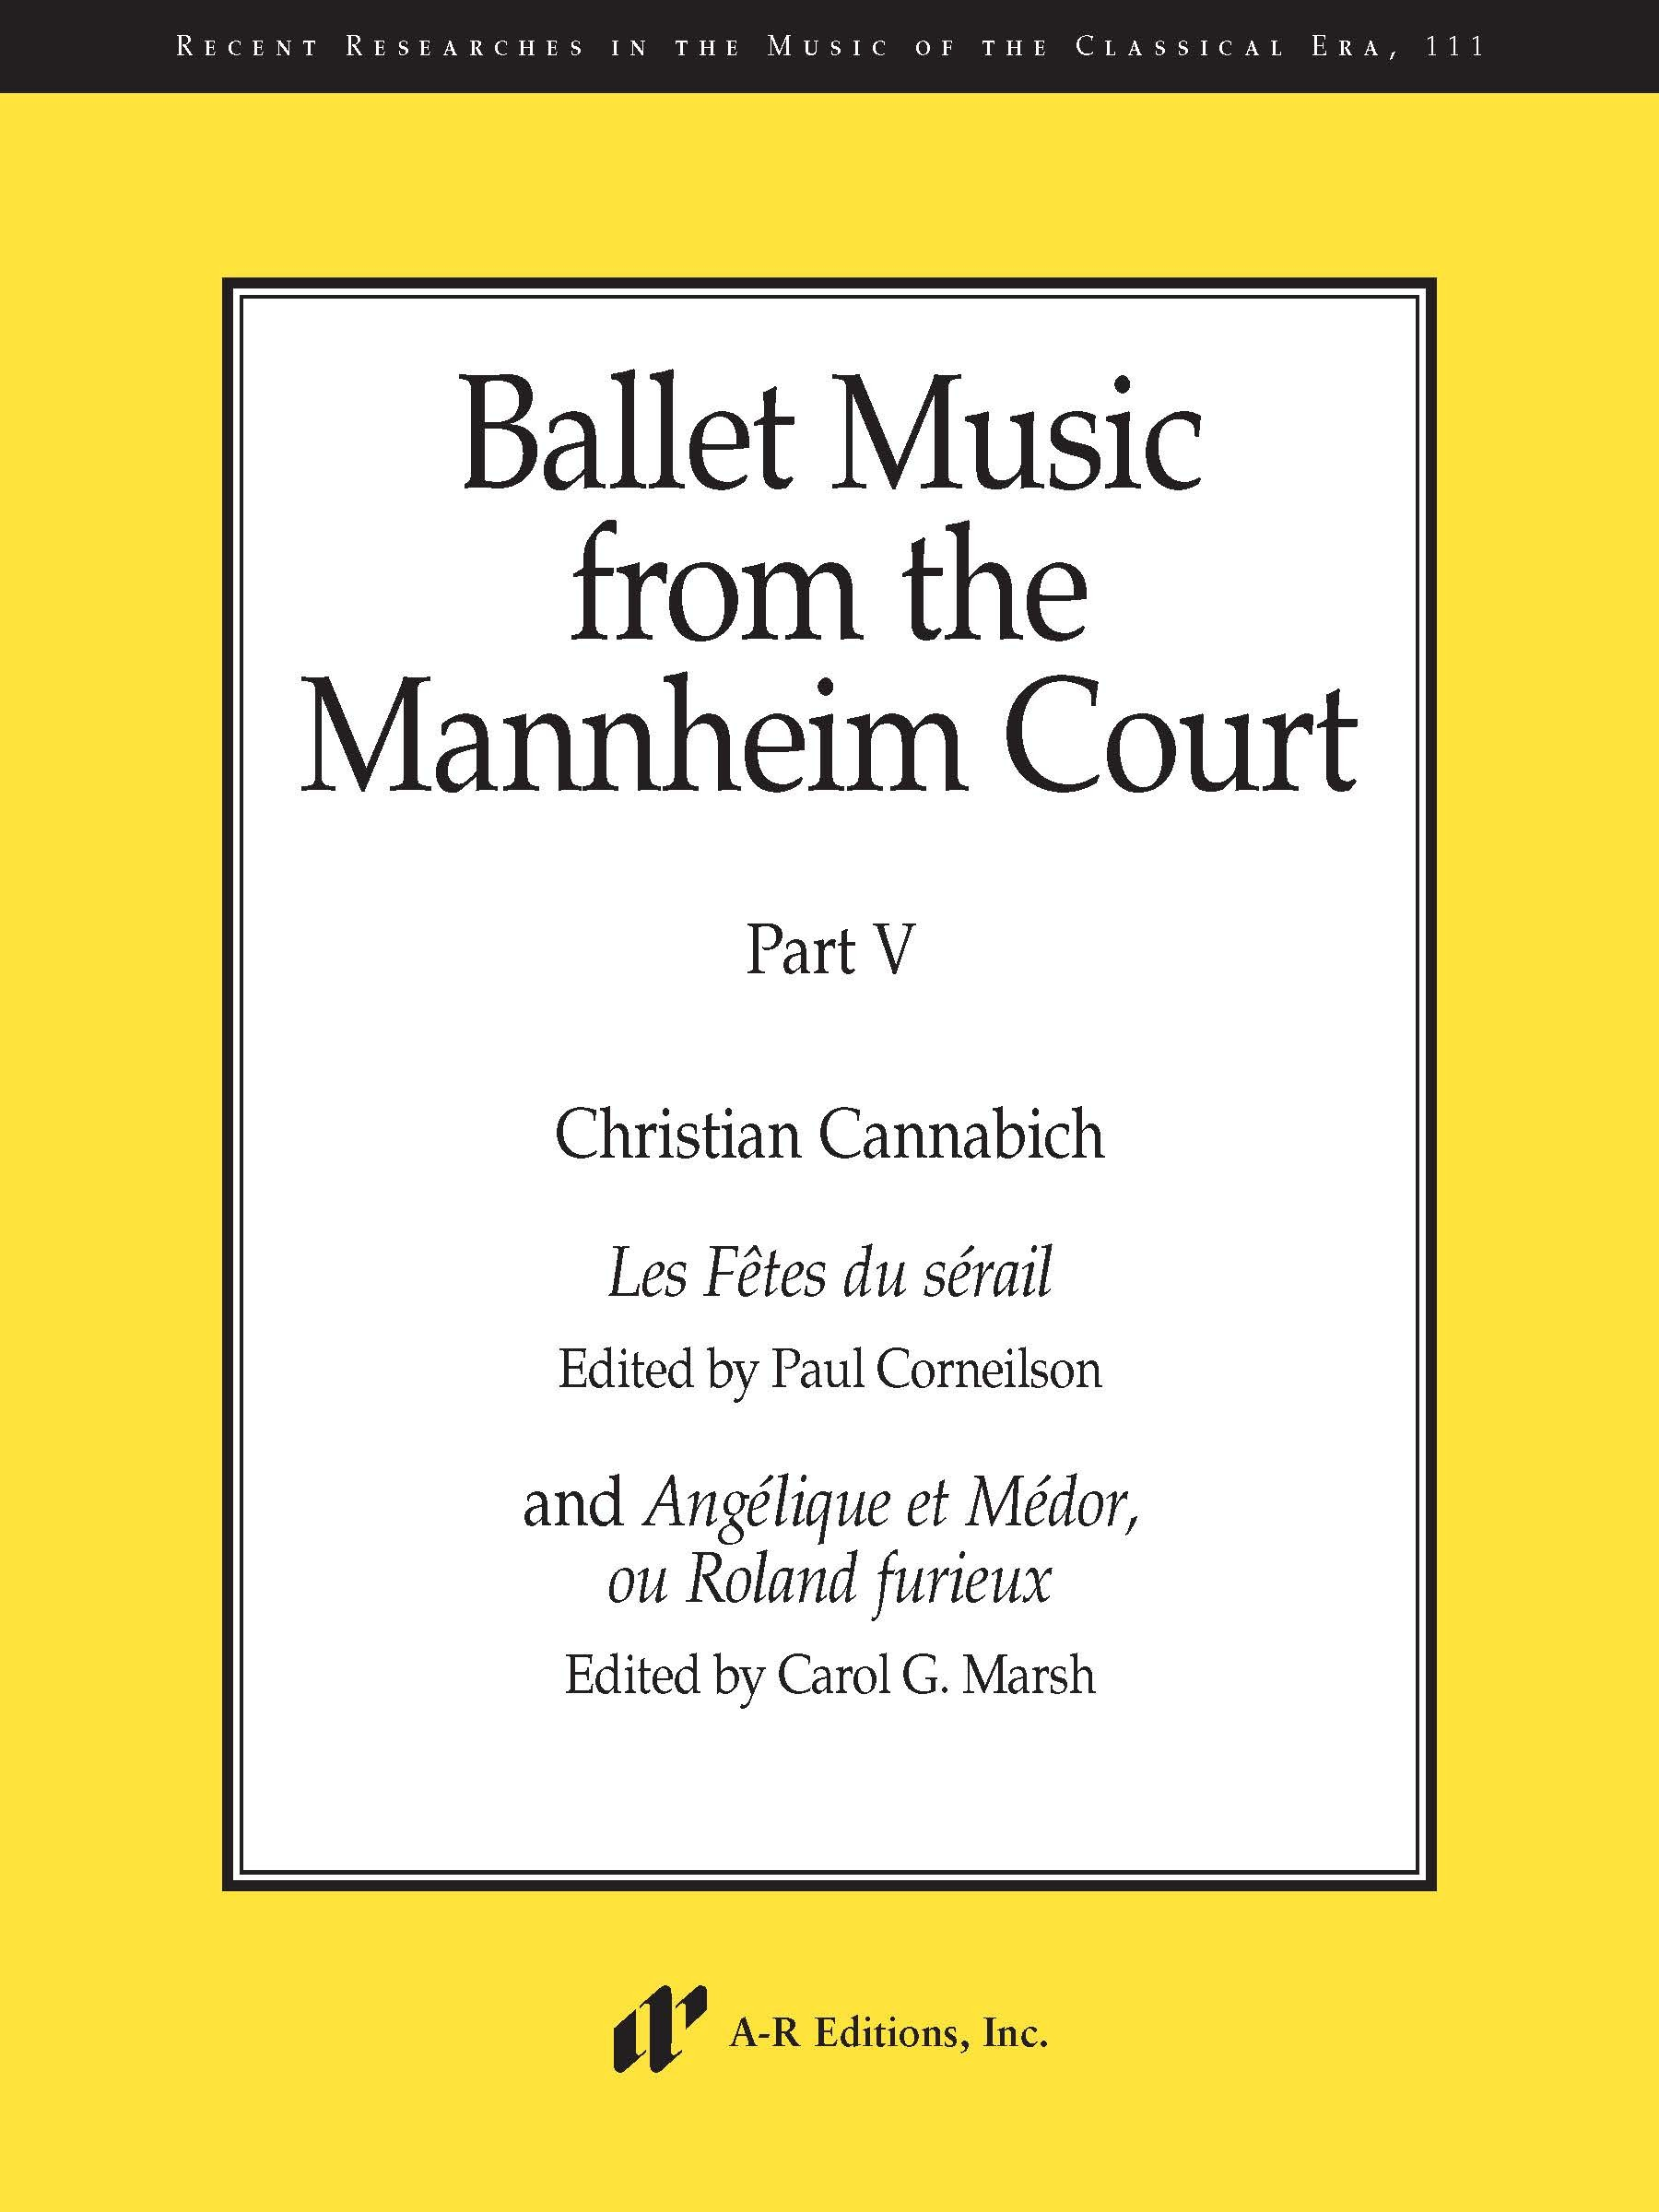 Ballet Music from the Mannheim Court, Part 5